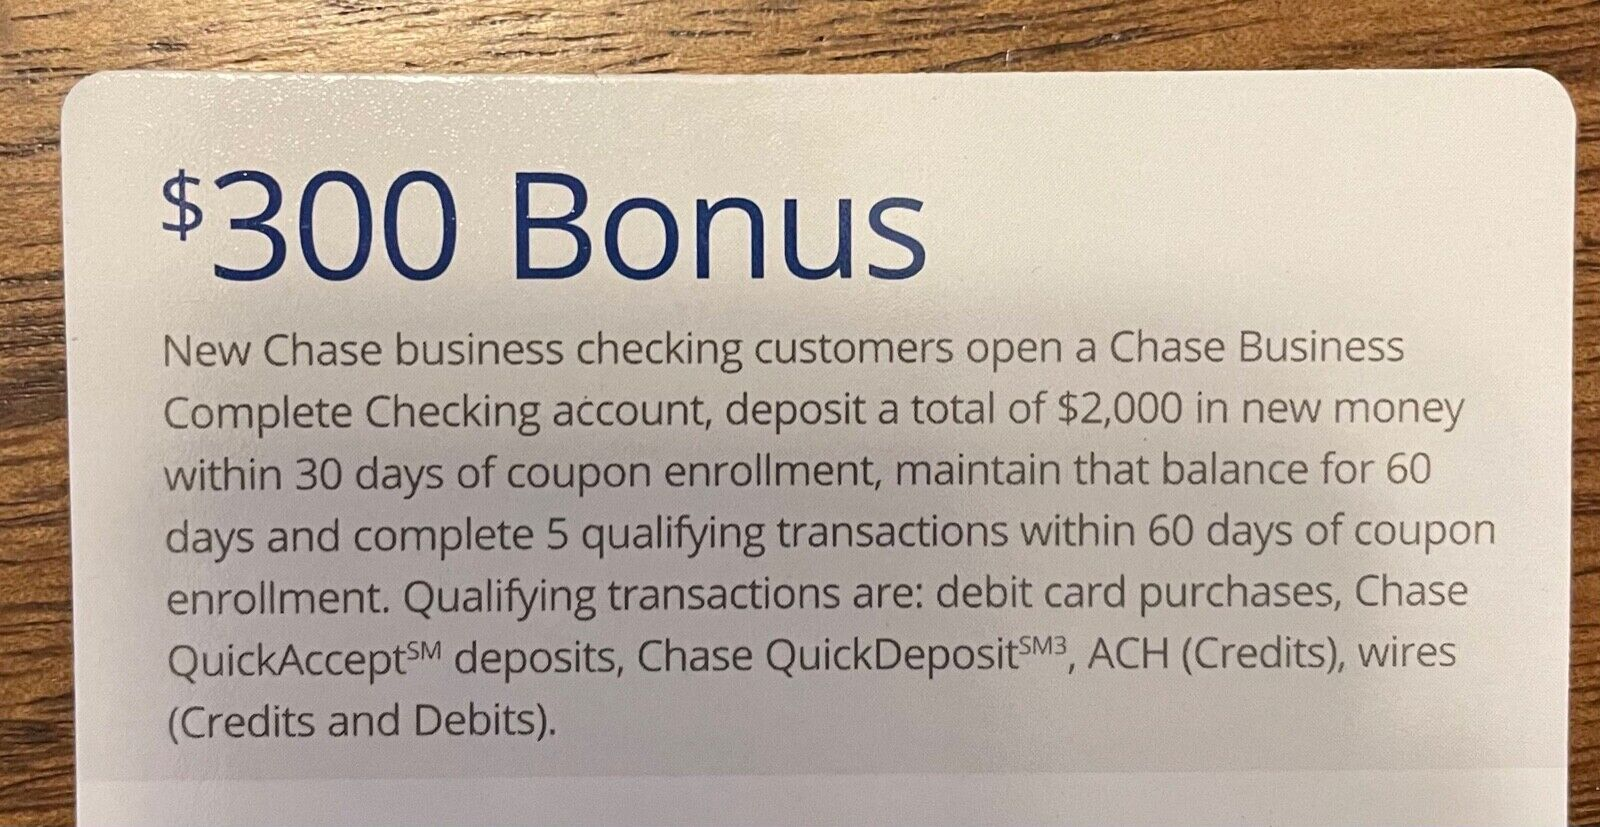 Chase Bank 300 Bonus Coupon Business Complete Checking Expires 03/04/2021  - $2.99